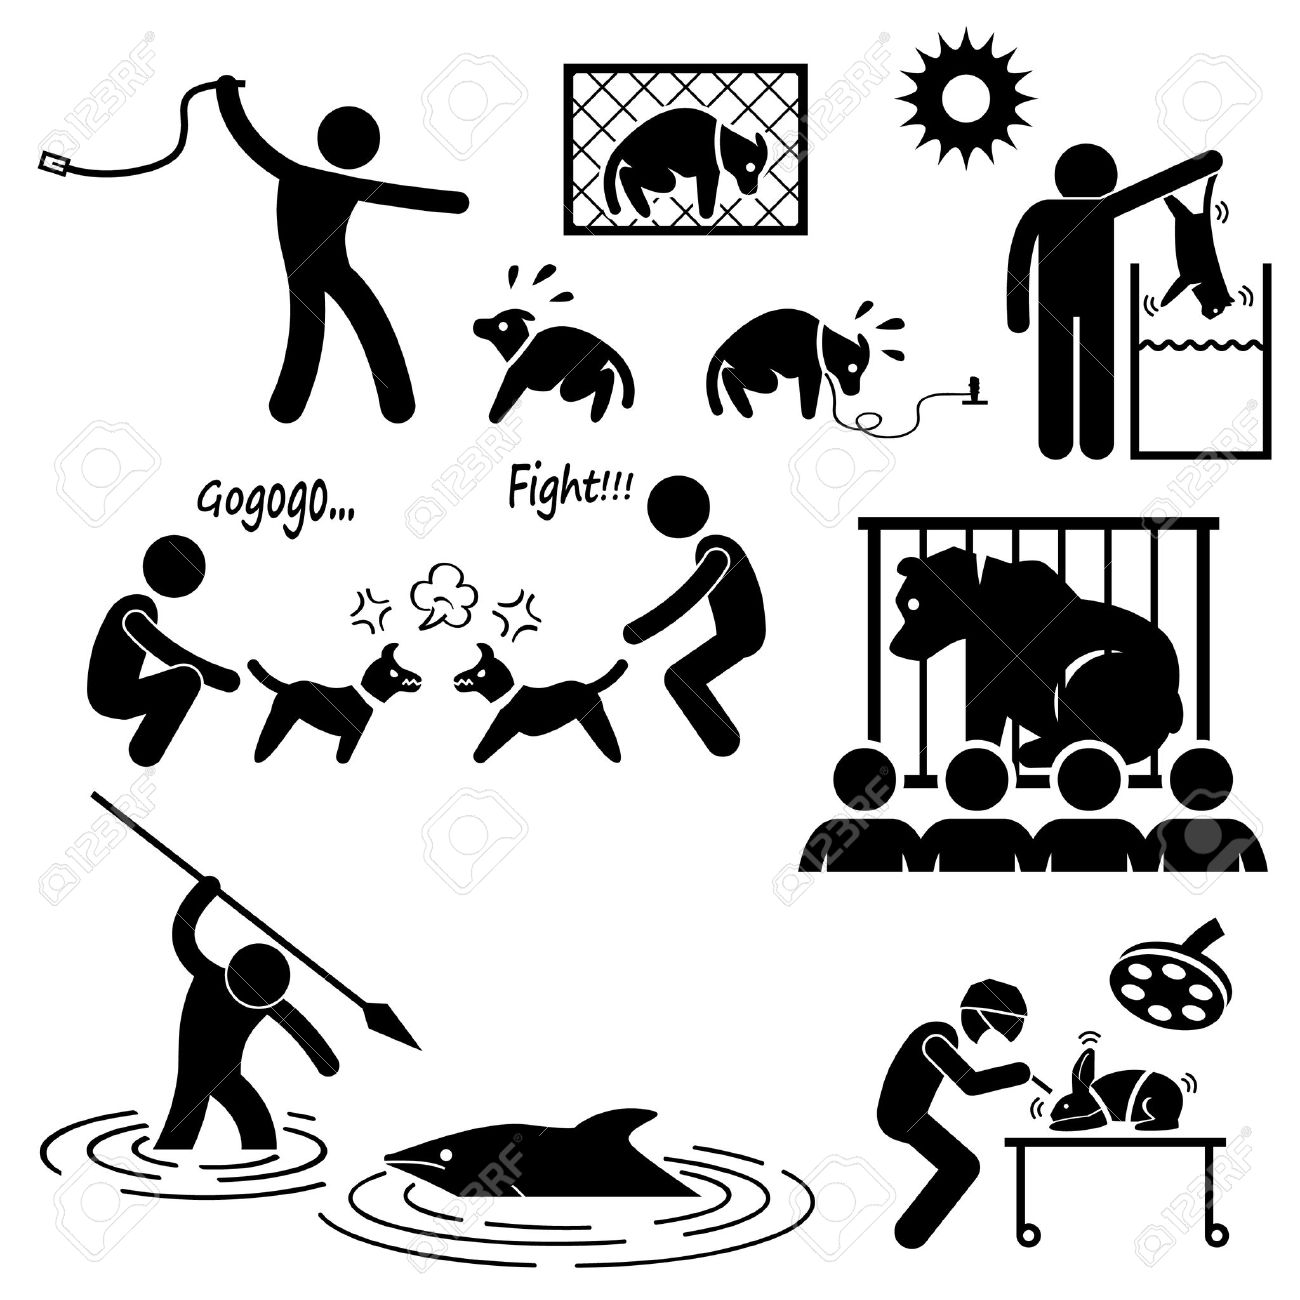 Animal Cruelty Abuse by Human Stick Figure Pictogram Icon Stock Vector - 26999403